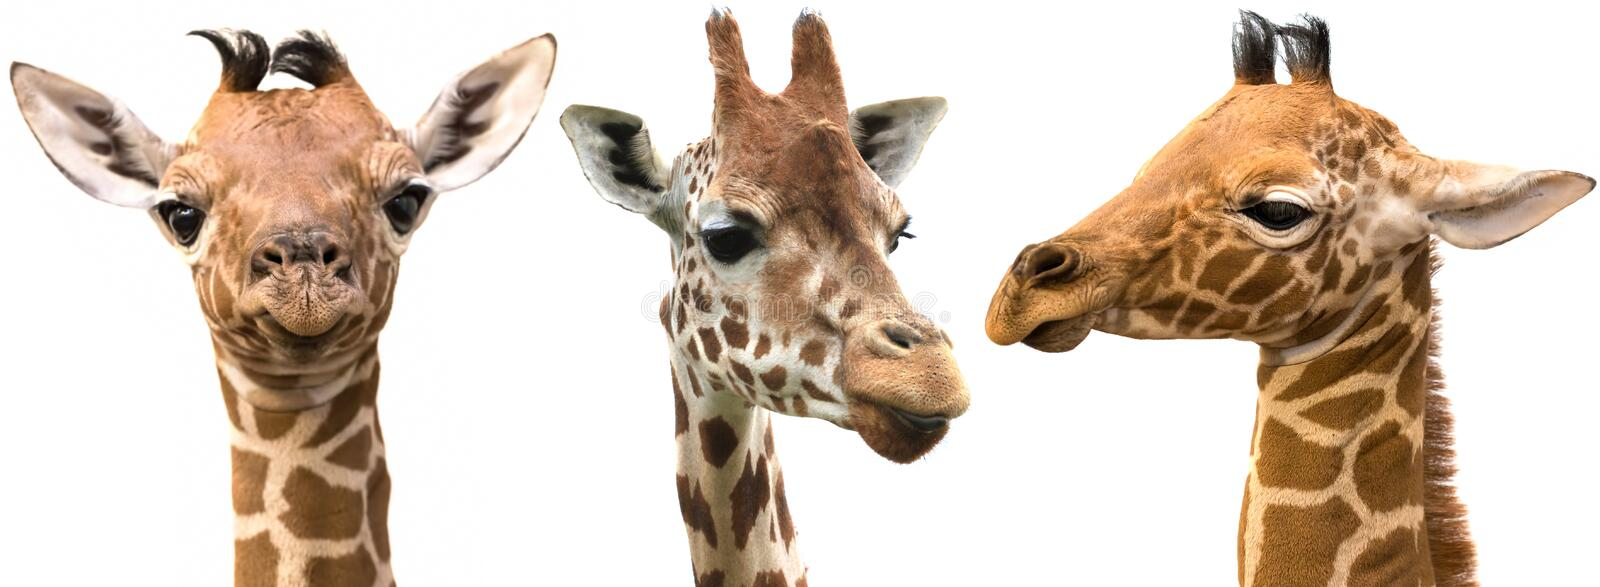 Giraffe heads isolated on white background royalty free stock photography